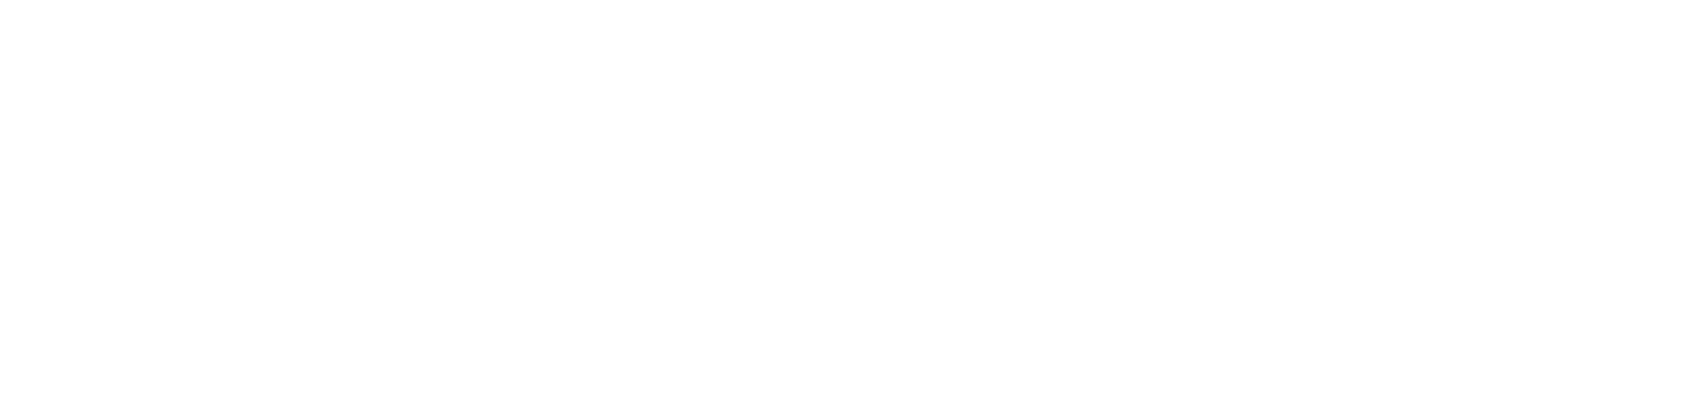 Attainable Growth